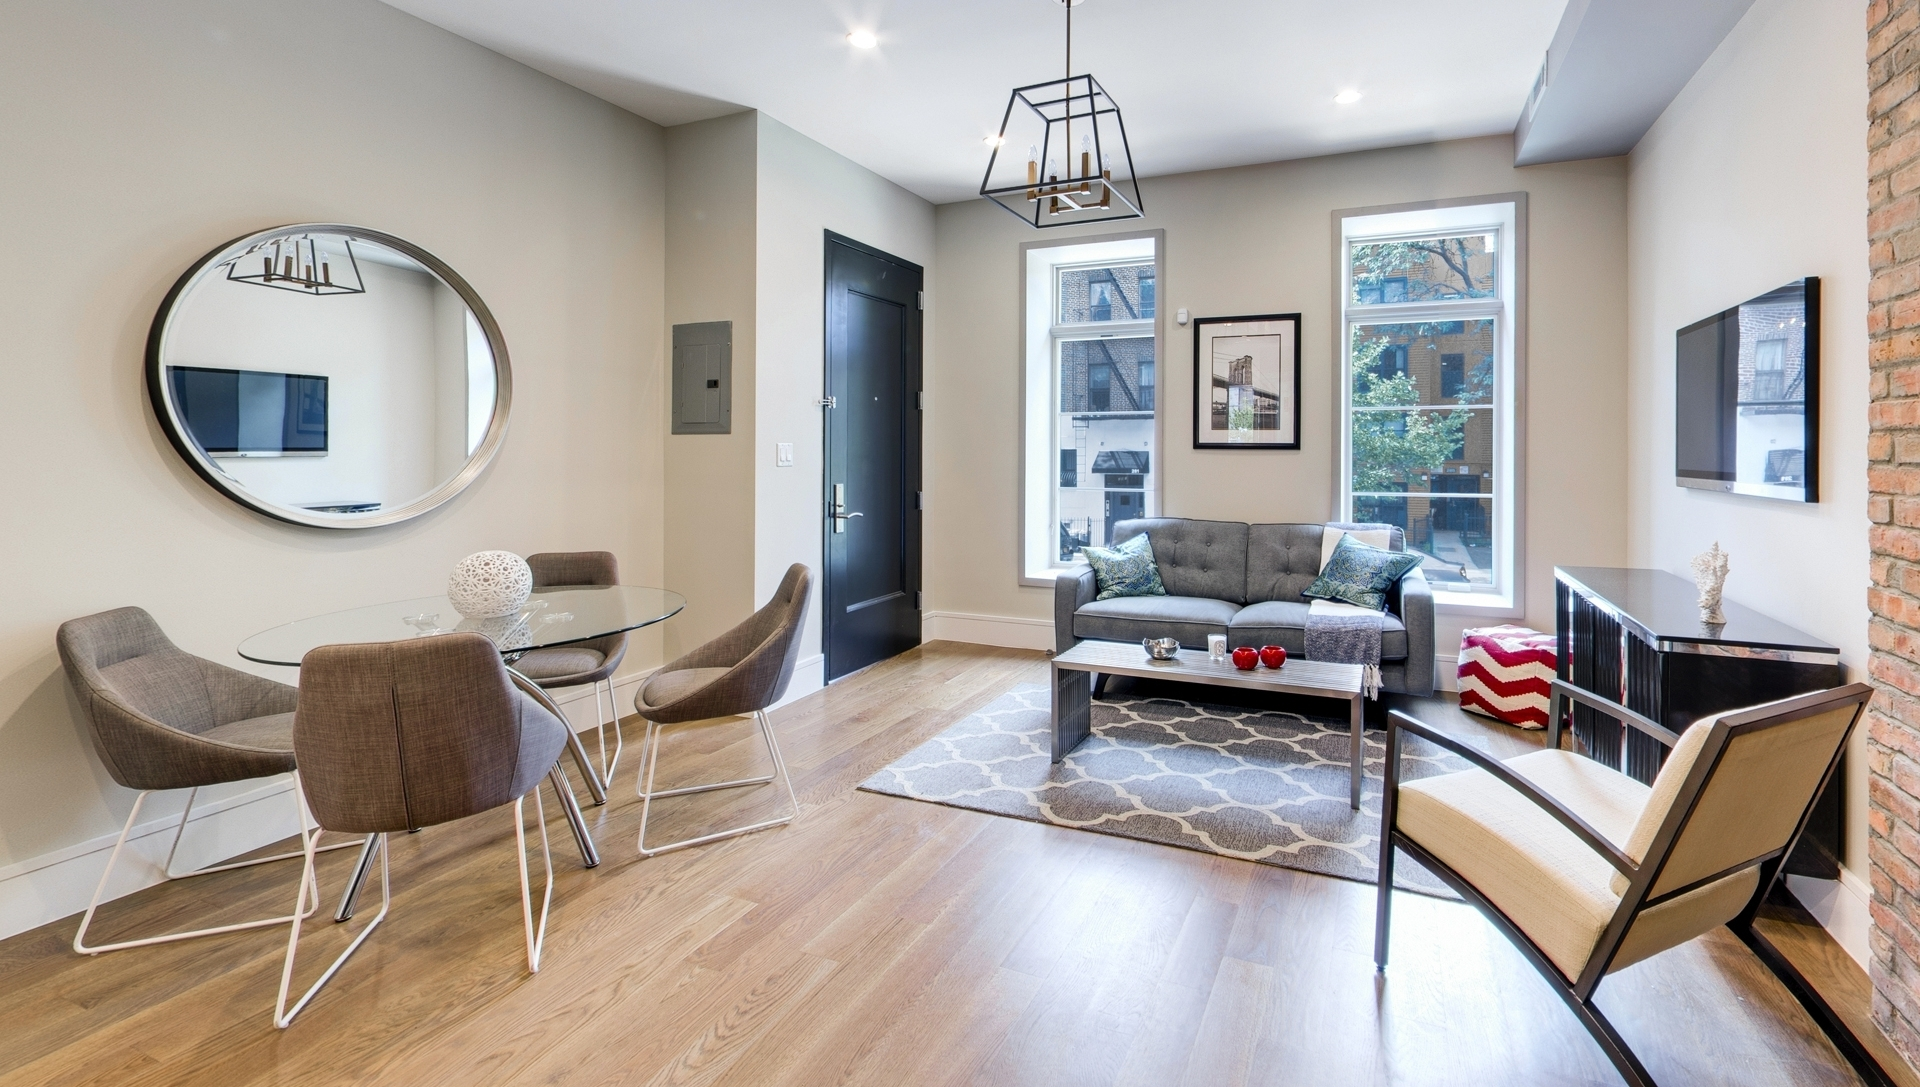 312 Clifton Place: Apt 4 - $825,000 // 2 Beds // 2 Baths A sublime condo boasting high-end finishes and tons of natural light, this 2-bedroom, 2-bathroom home is a chic portrait of contemporary Brooklyn living.